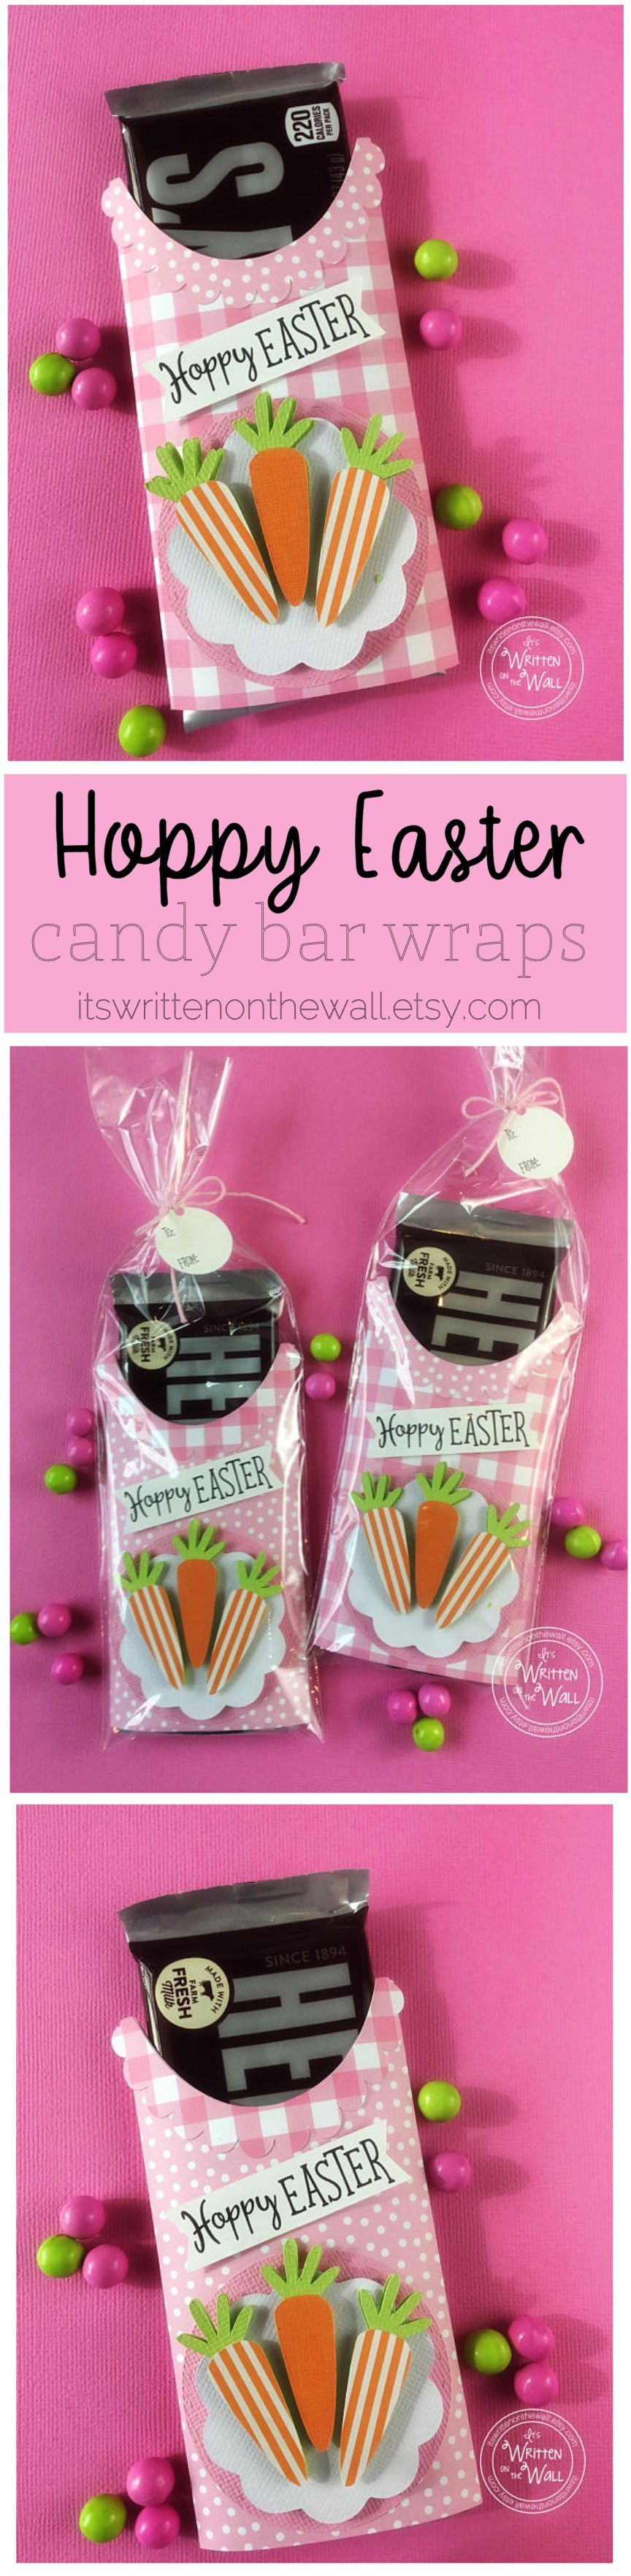 Special easter basket candy party favor co workers treats special easter basket candy party favor co workers treats employee gifts client gifts teacher appreciation neighbor gifts office treats office gifts negle Images